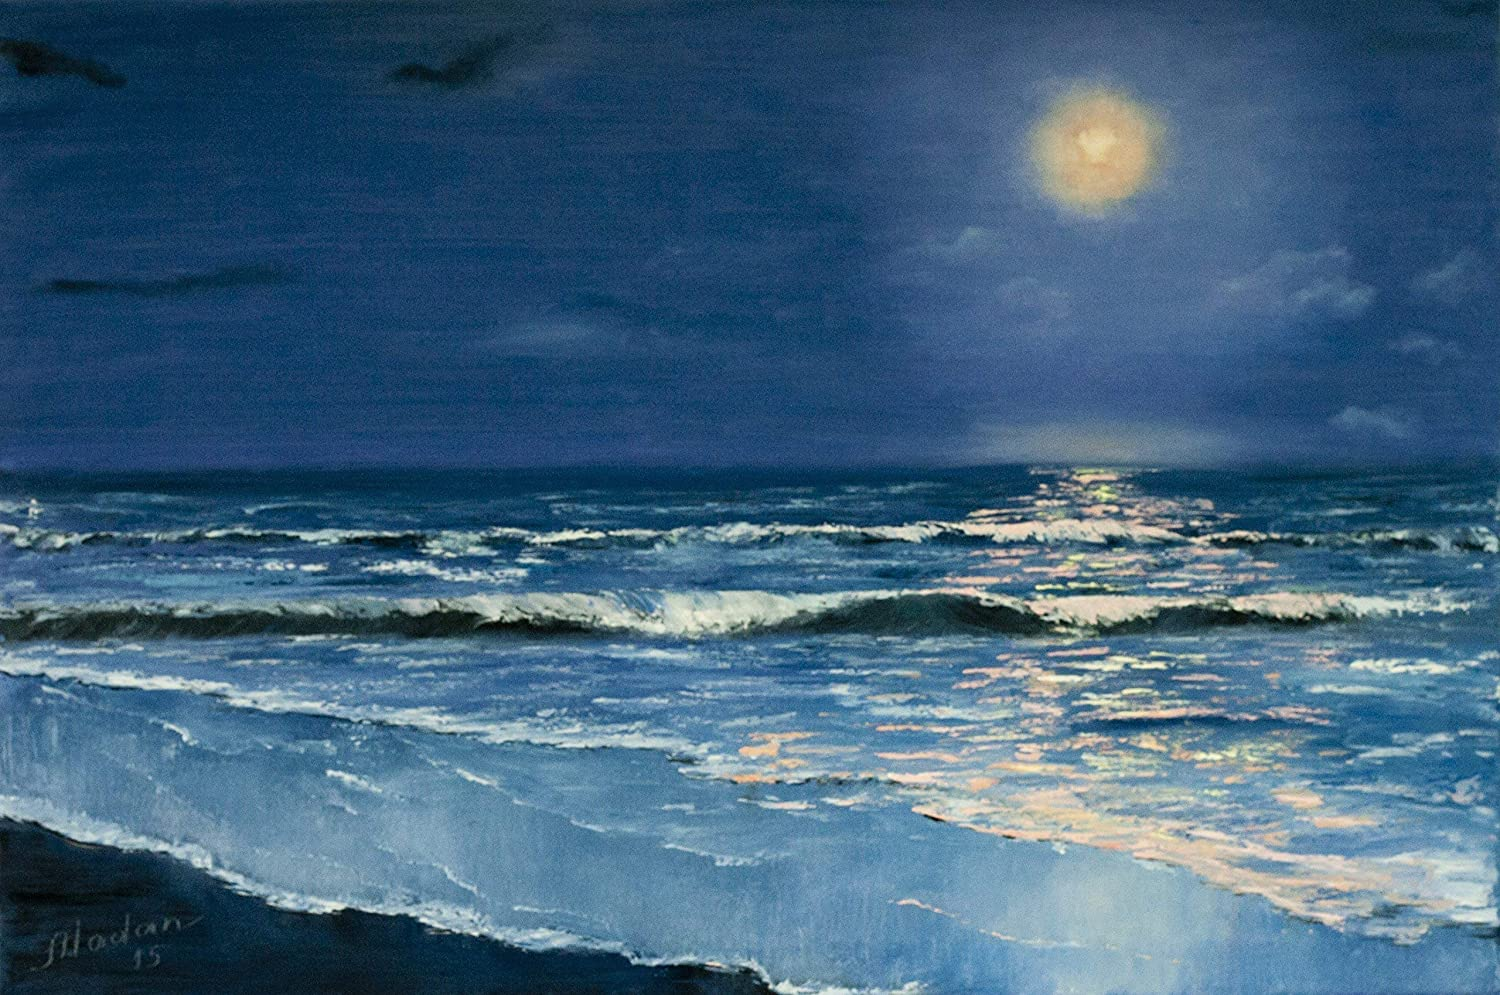 Reproduction of the original oil seascape painting of night sea under the moonlight Giclee print